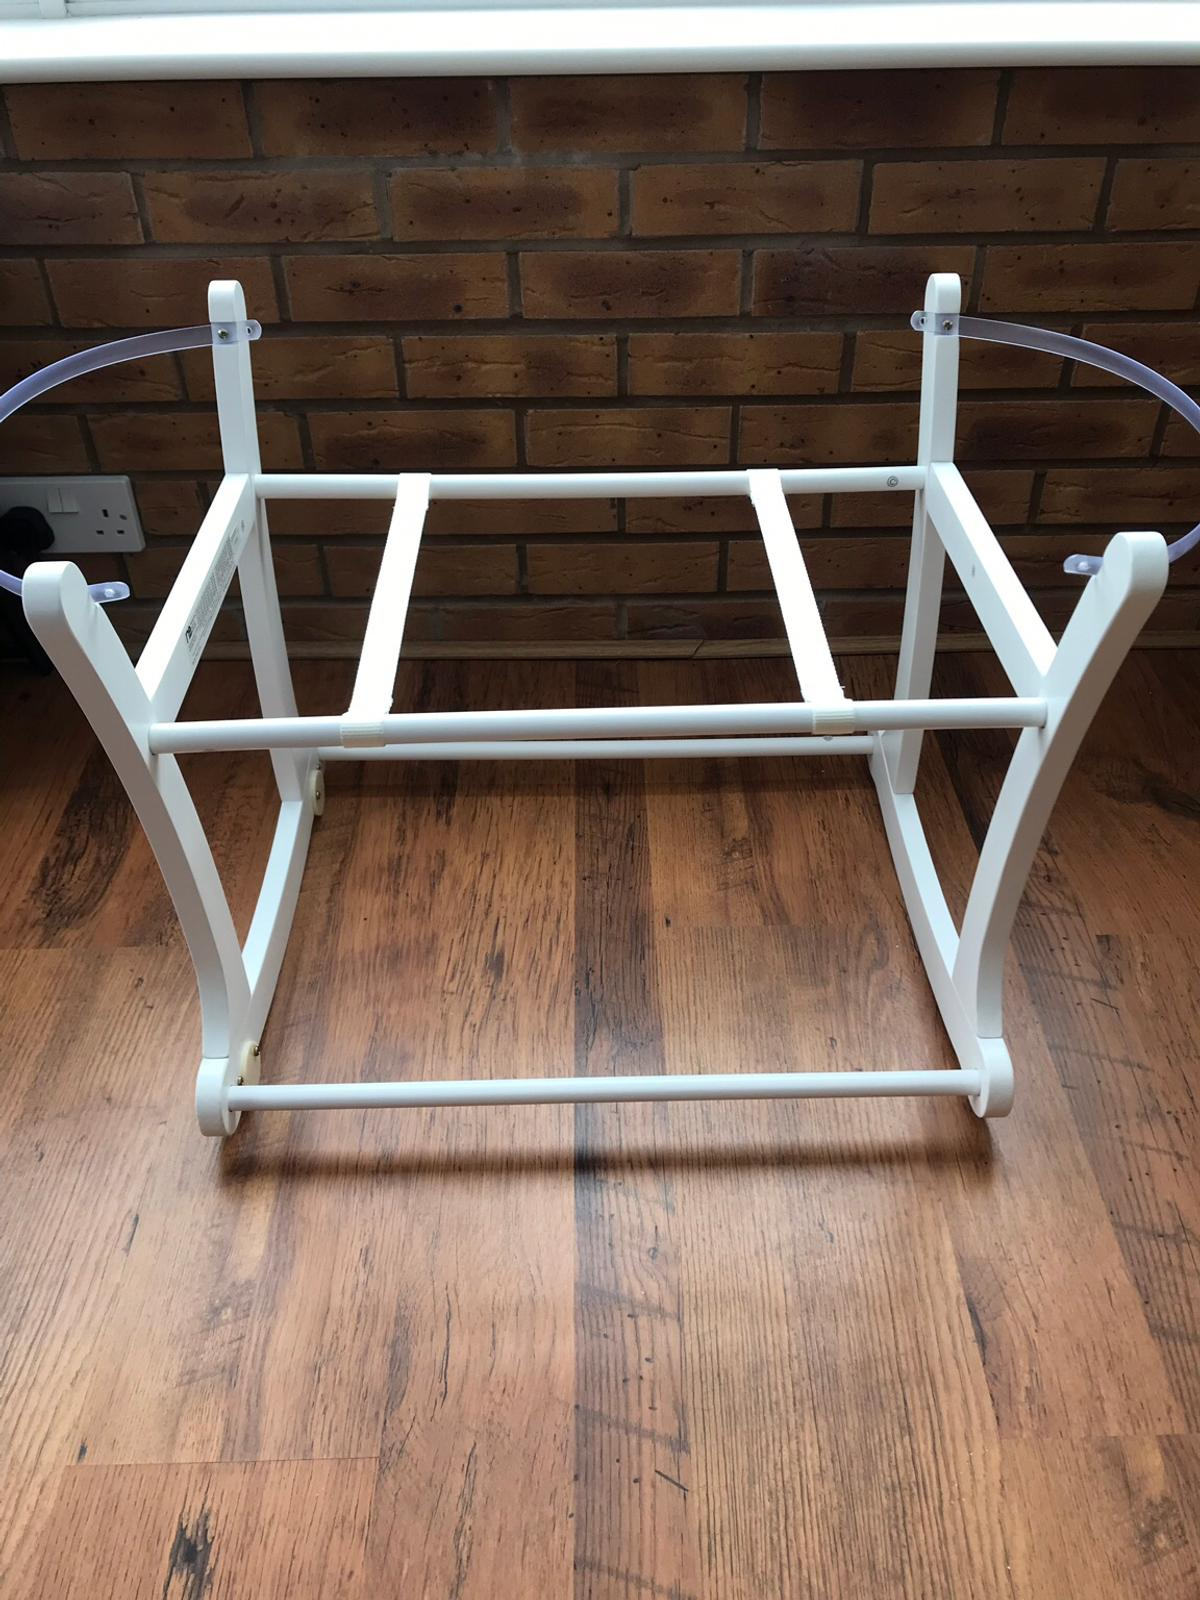 Selling Moses basket stand , it is brand new and never been used , would like £15-£20 for it as paid £35 and never used but I will accept a reasonable offer as would like to get rid :) Collection only please